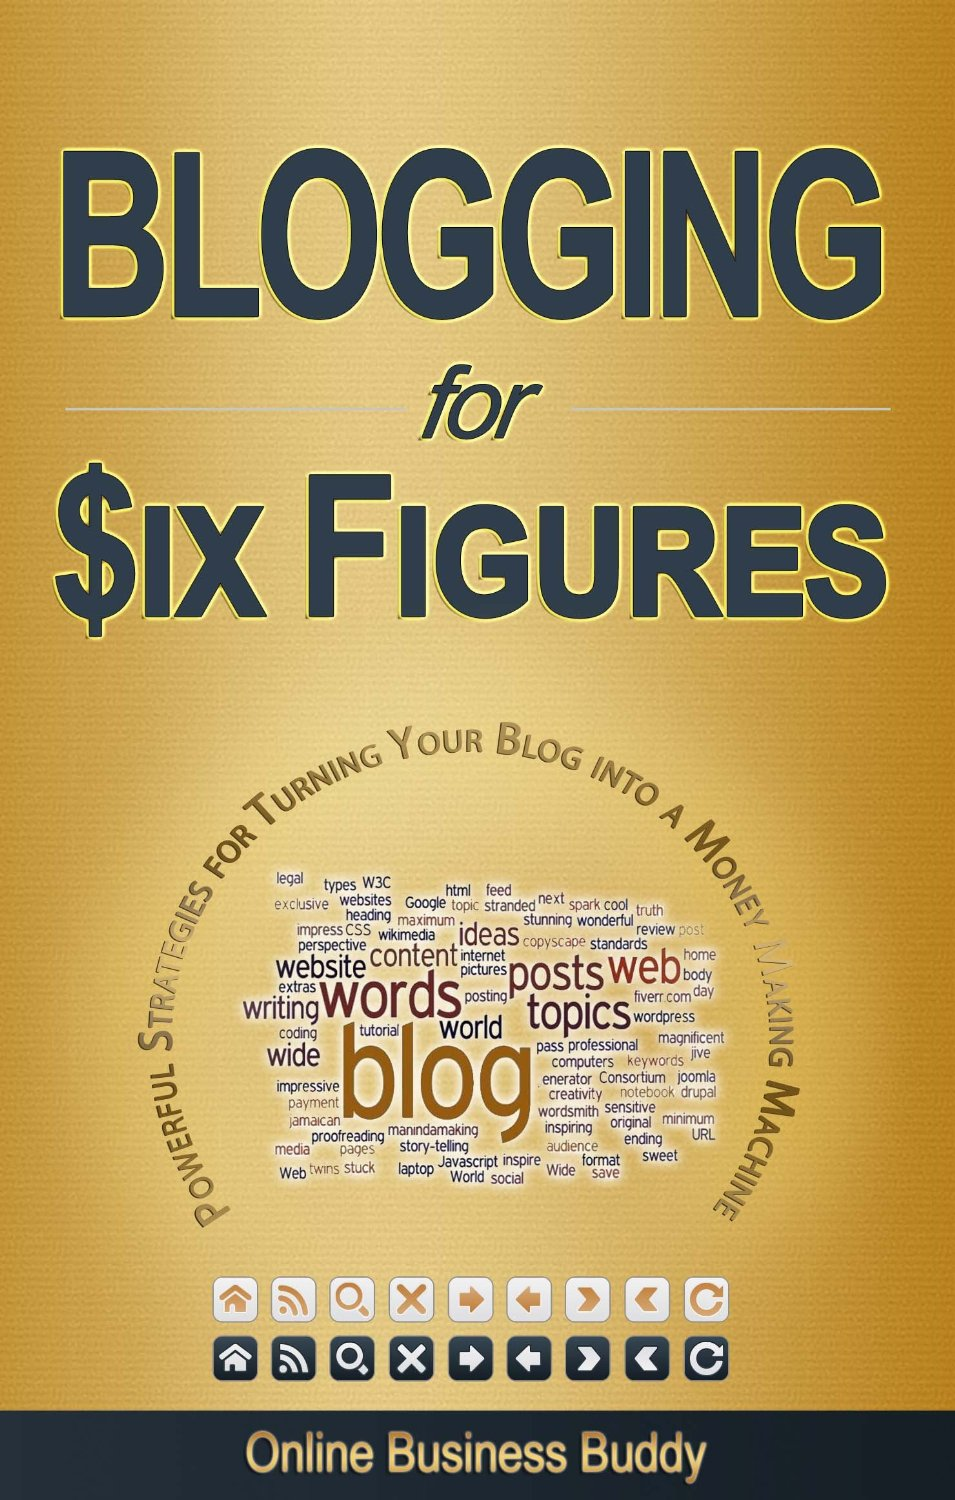 blogging-for-six-figures